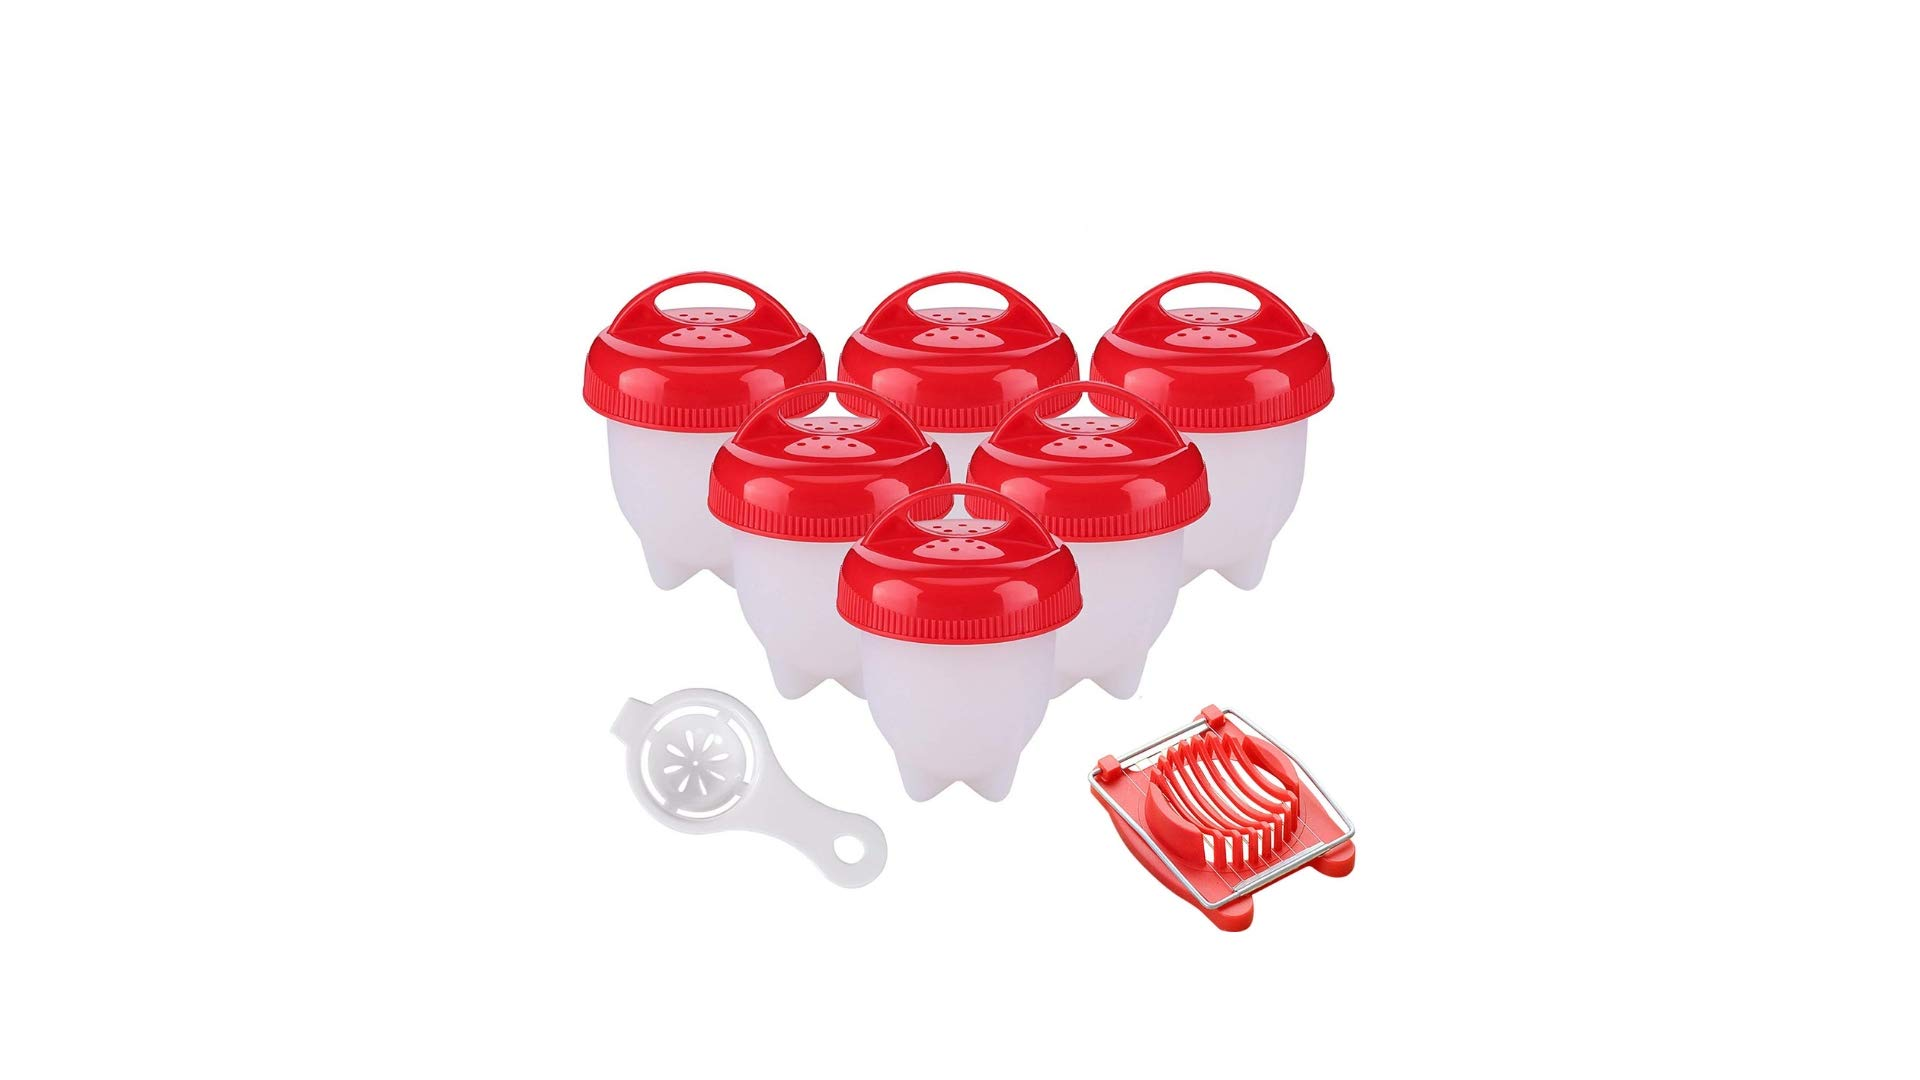 Egg Cooker ,Hard Boiled Eggs without the Shell,6PACK,Silicone Egg Boil,Soft Maker Egg Cooker,, Non-Stick Silicone, As Seen On TV